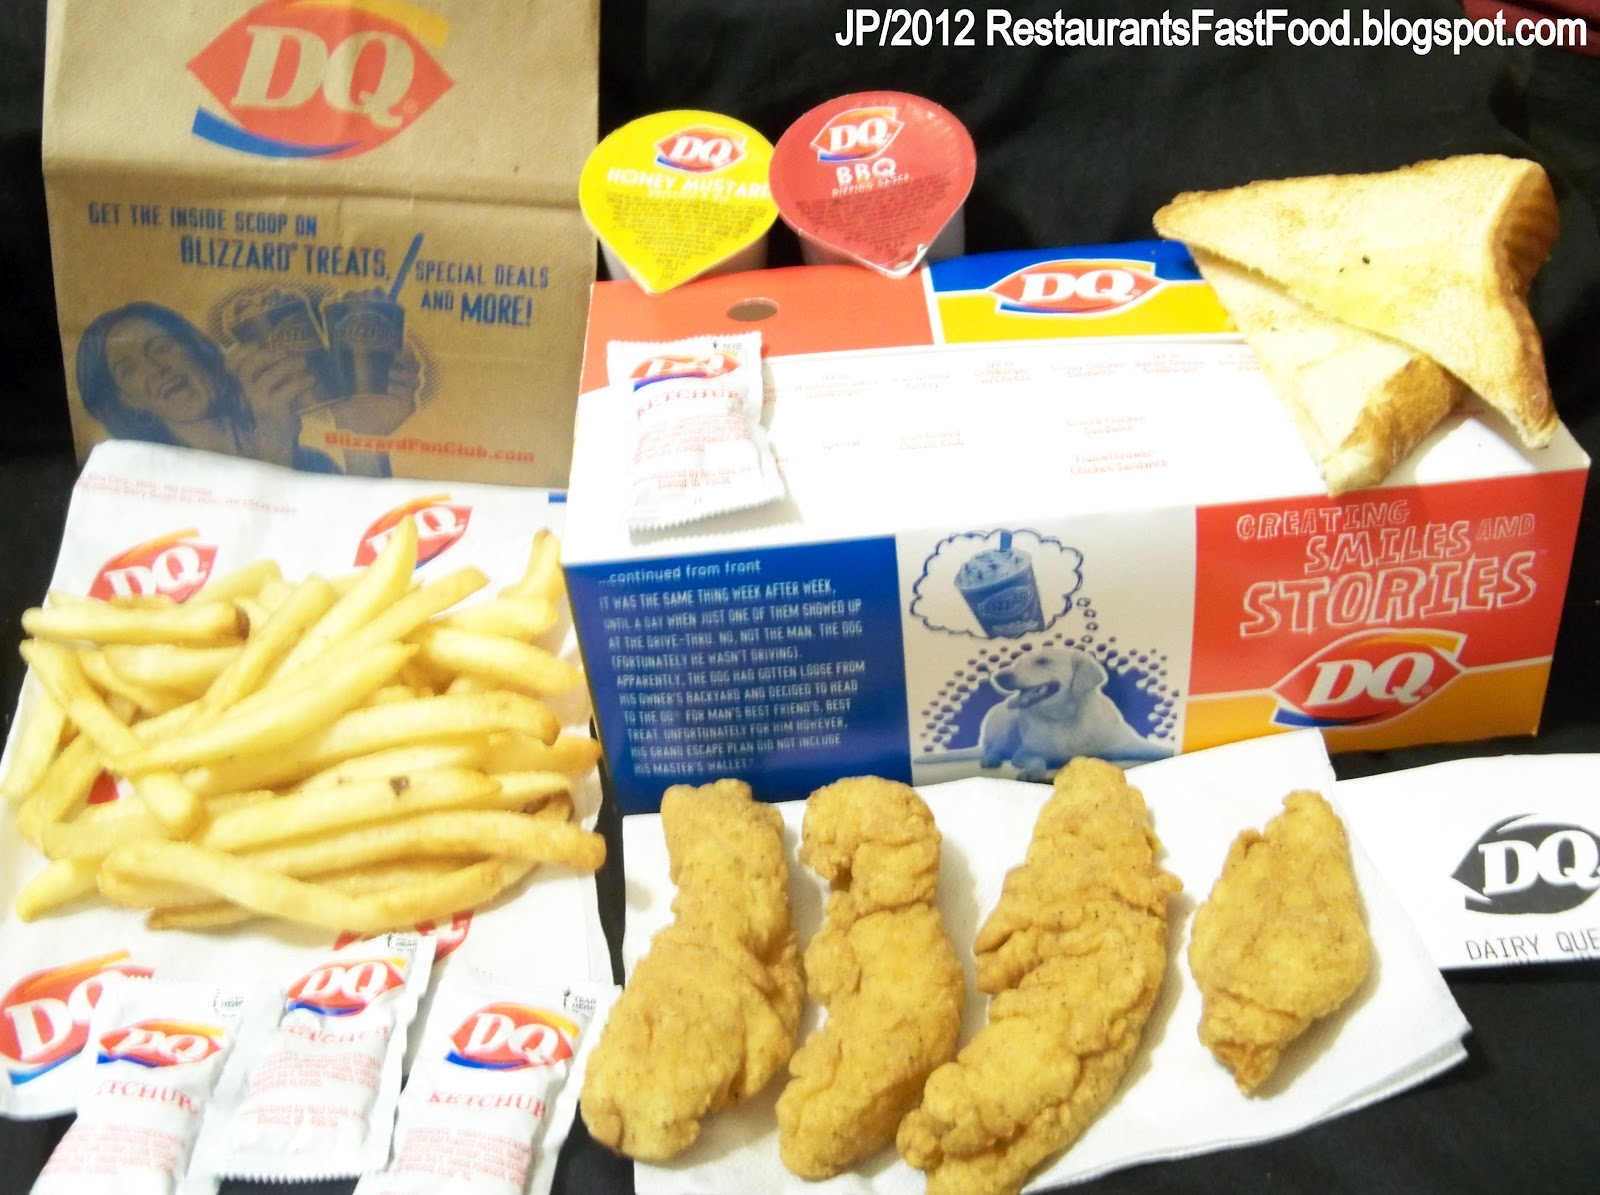 Houston Fast Food Restaurants